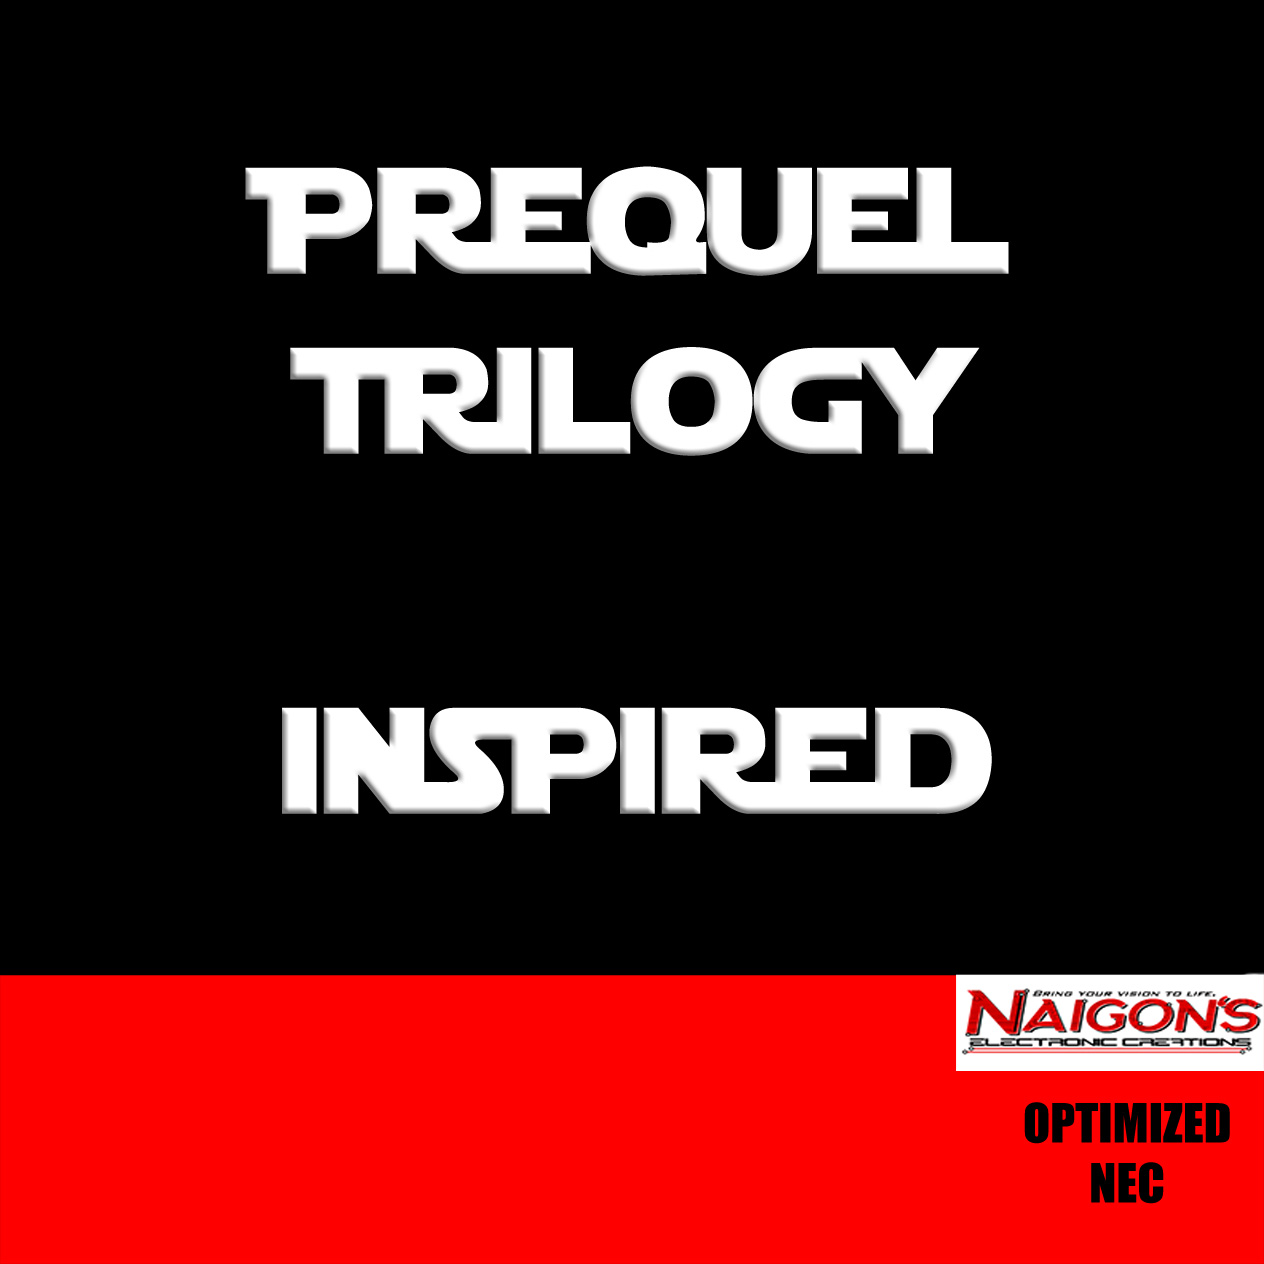 Prequel Trilogy Inspired NEC